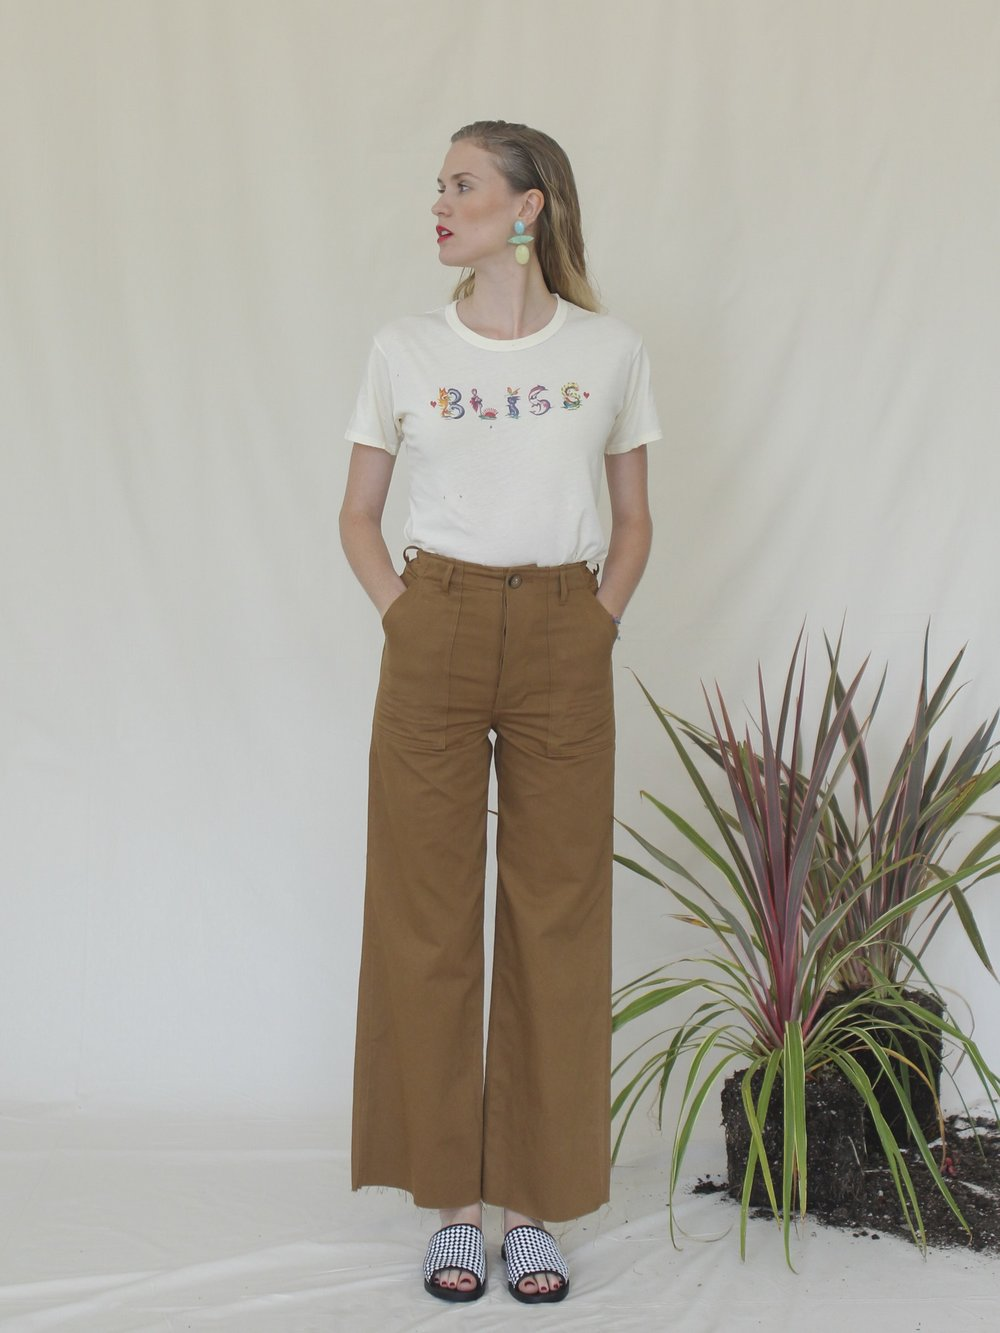 Bliss And Mischief-Boardwalk 'Bliss' Slim Tee